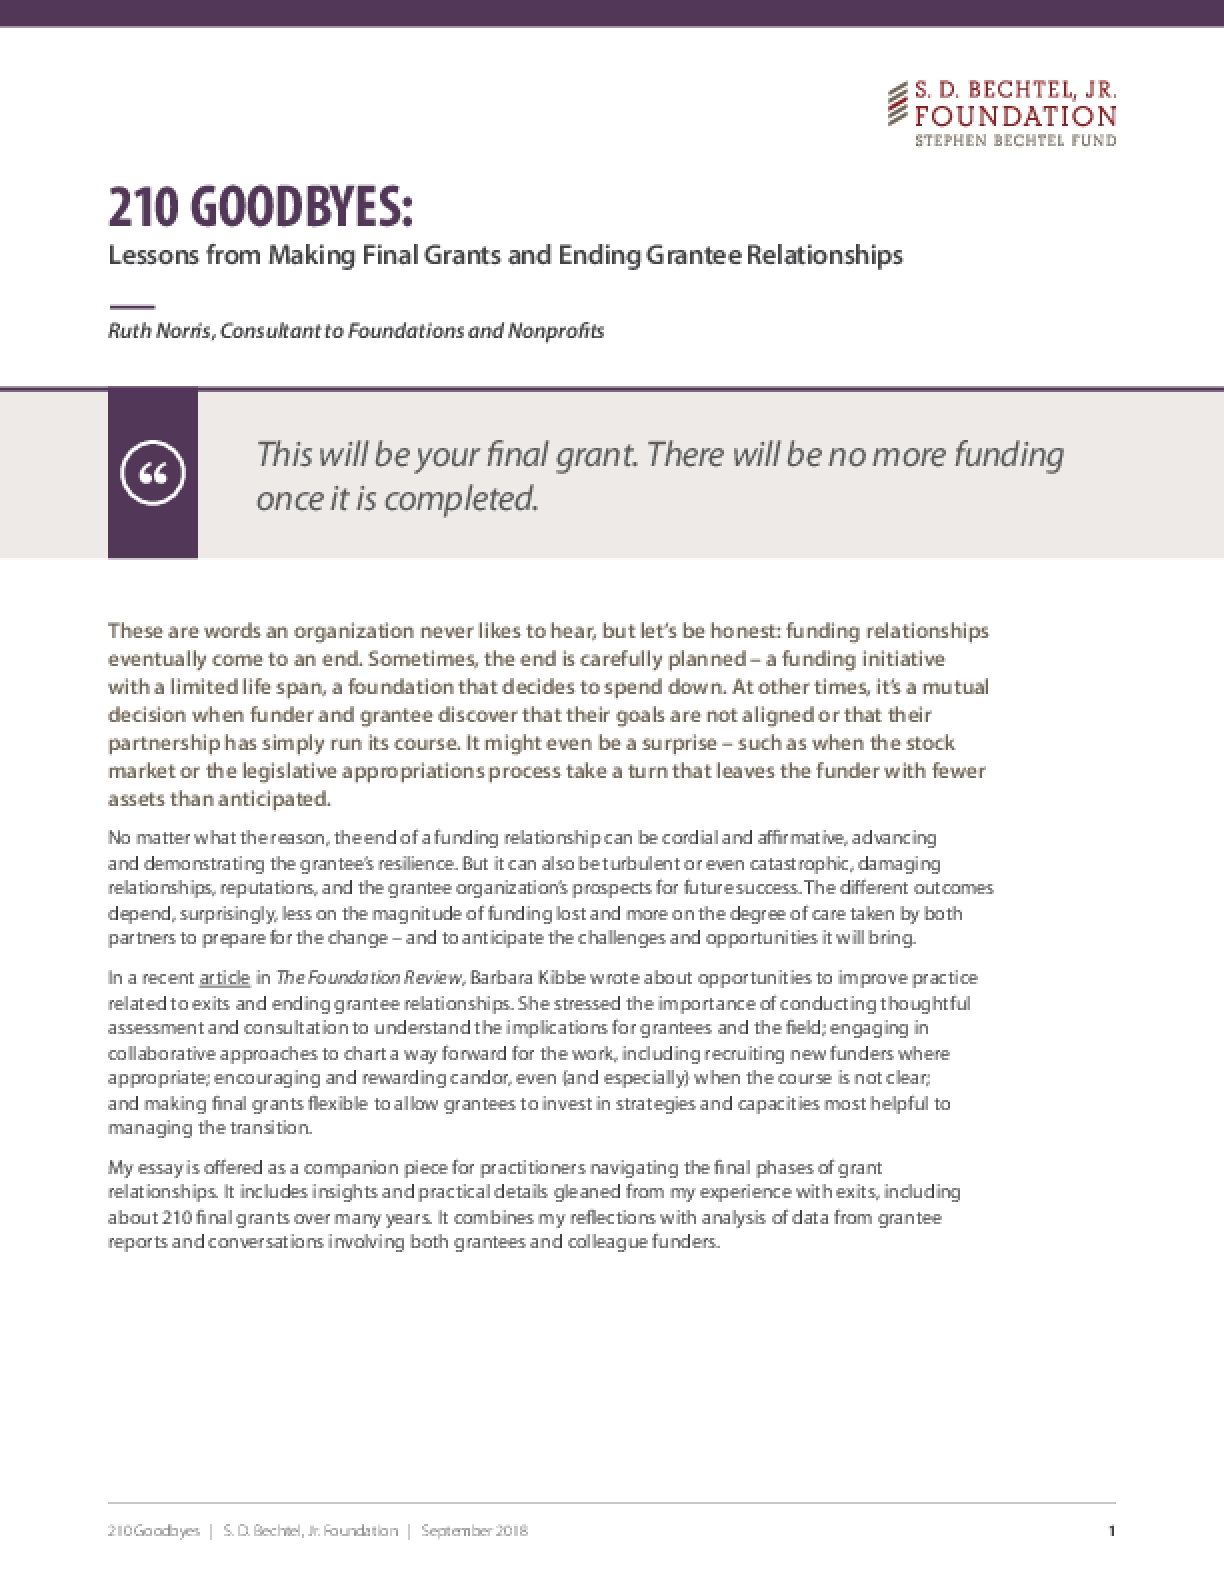 210 Goodbyes: Lessons from Making Final Grants and Ending Grantee Relationships